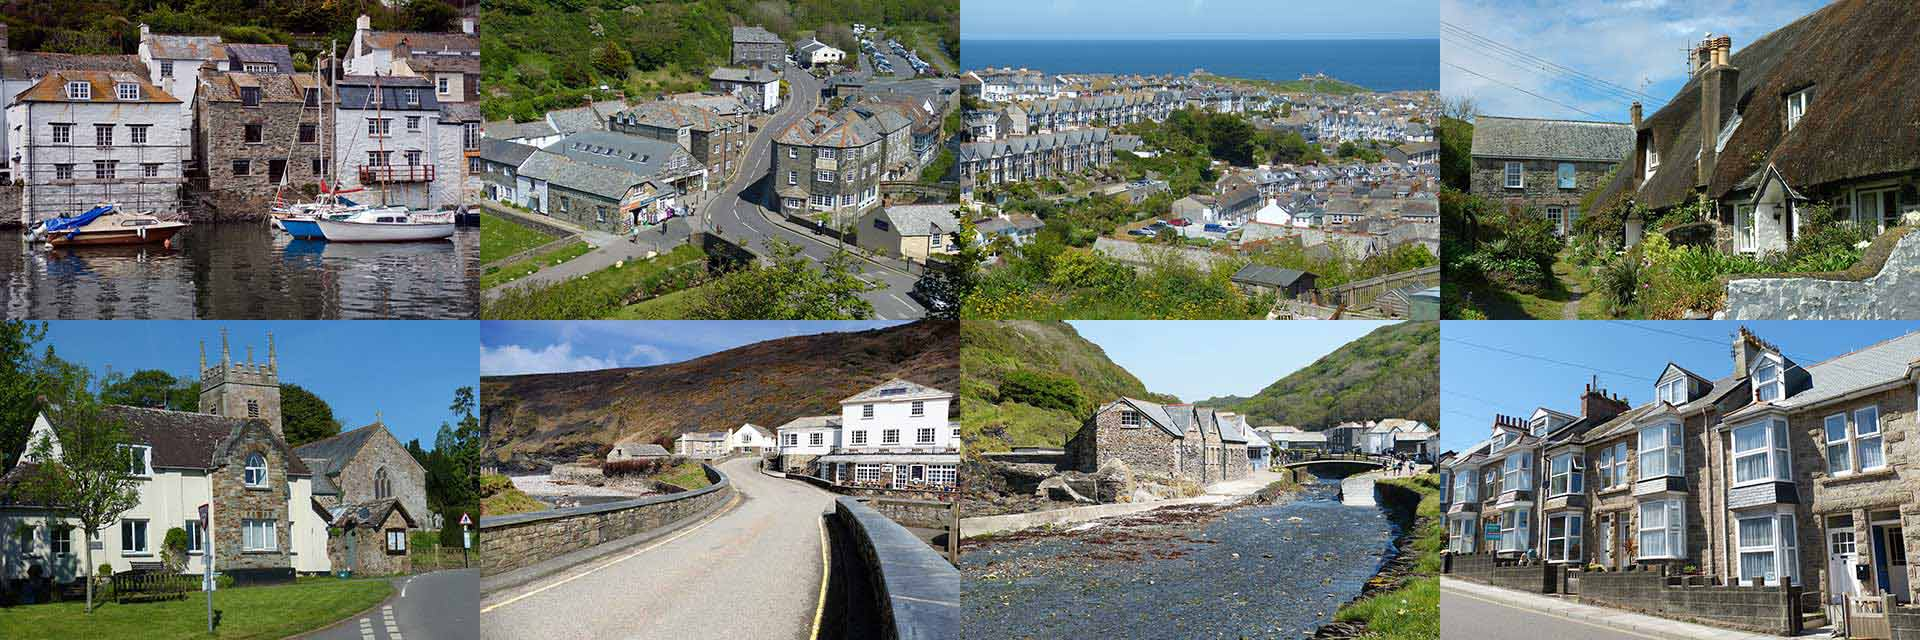 Collage of images of properties in Cornwall